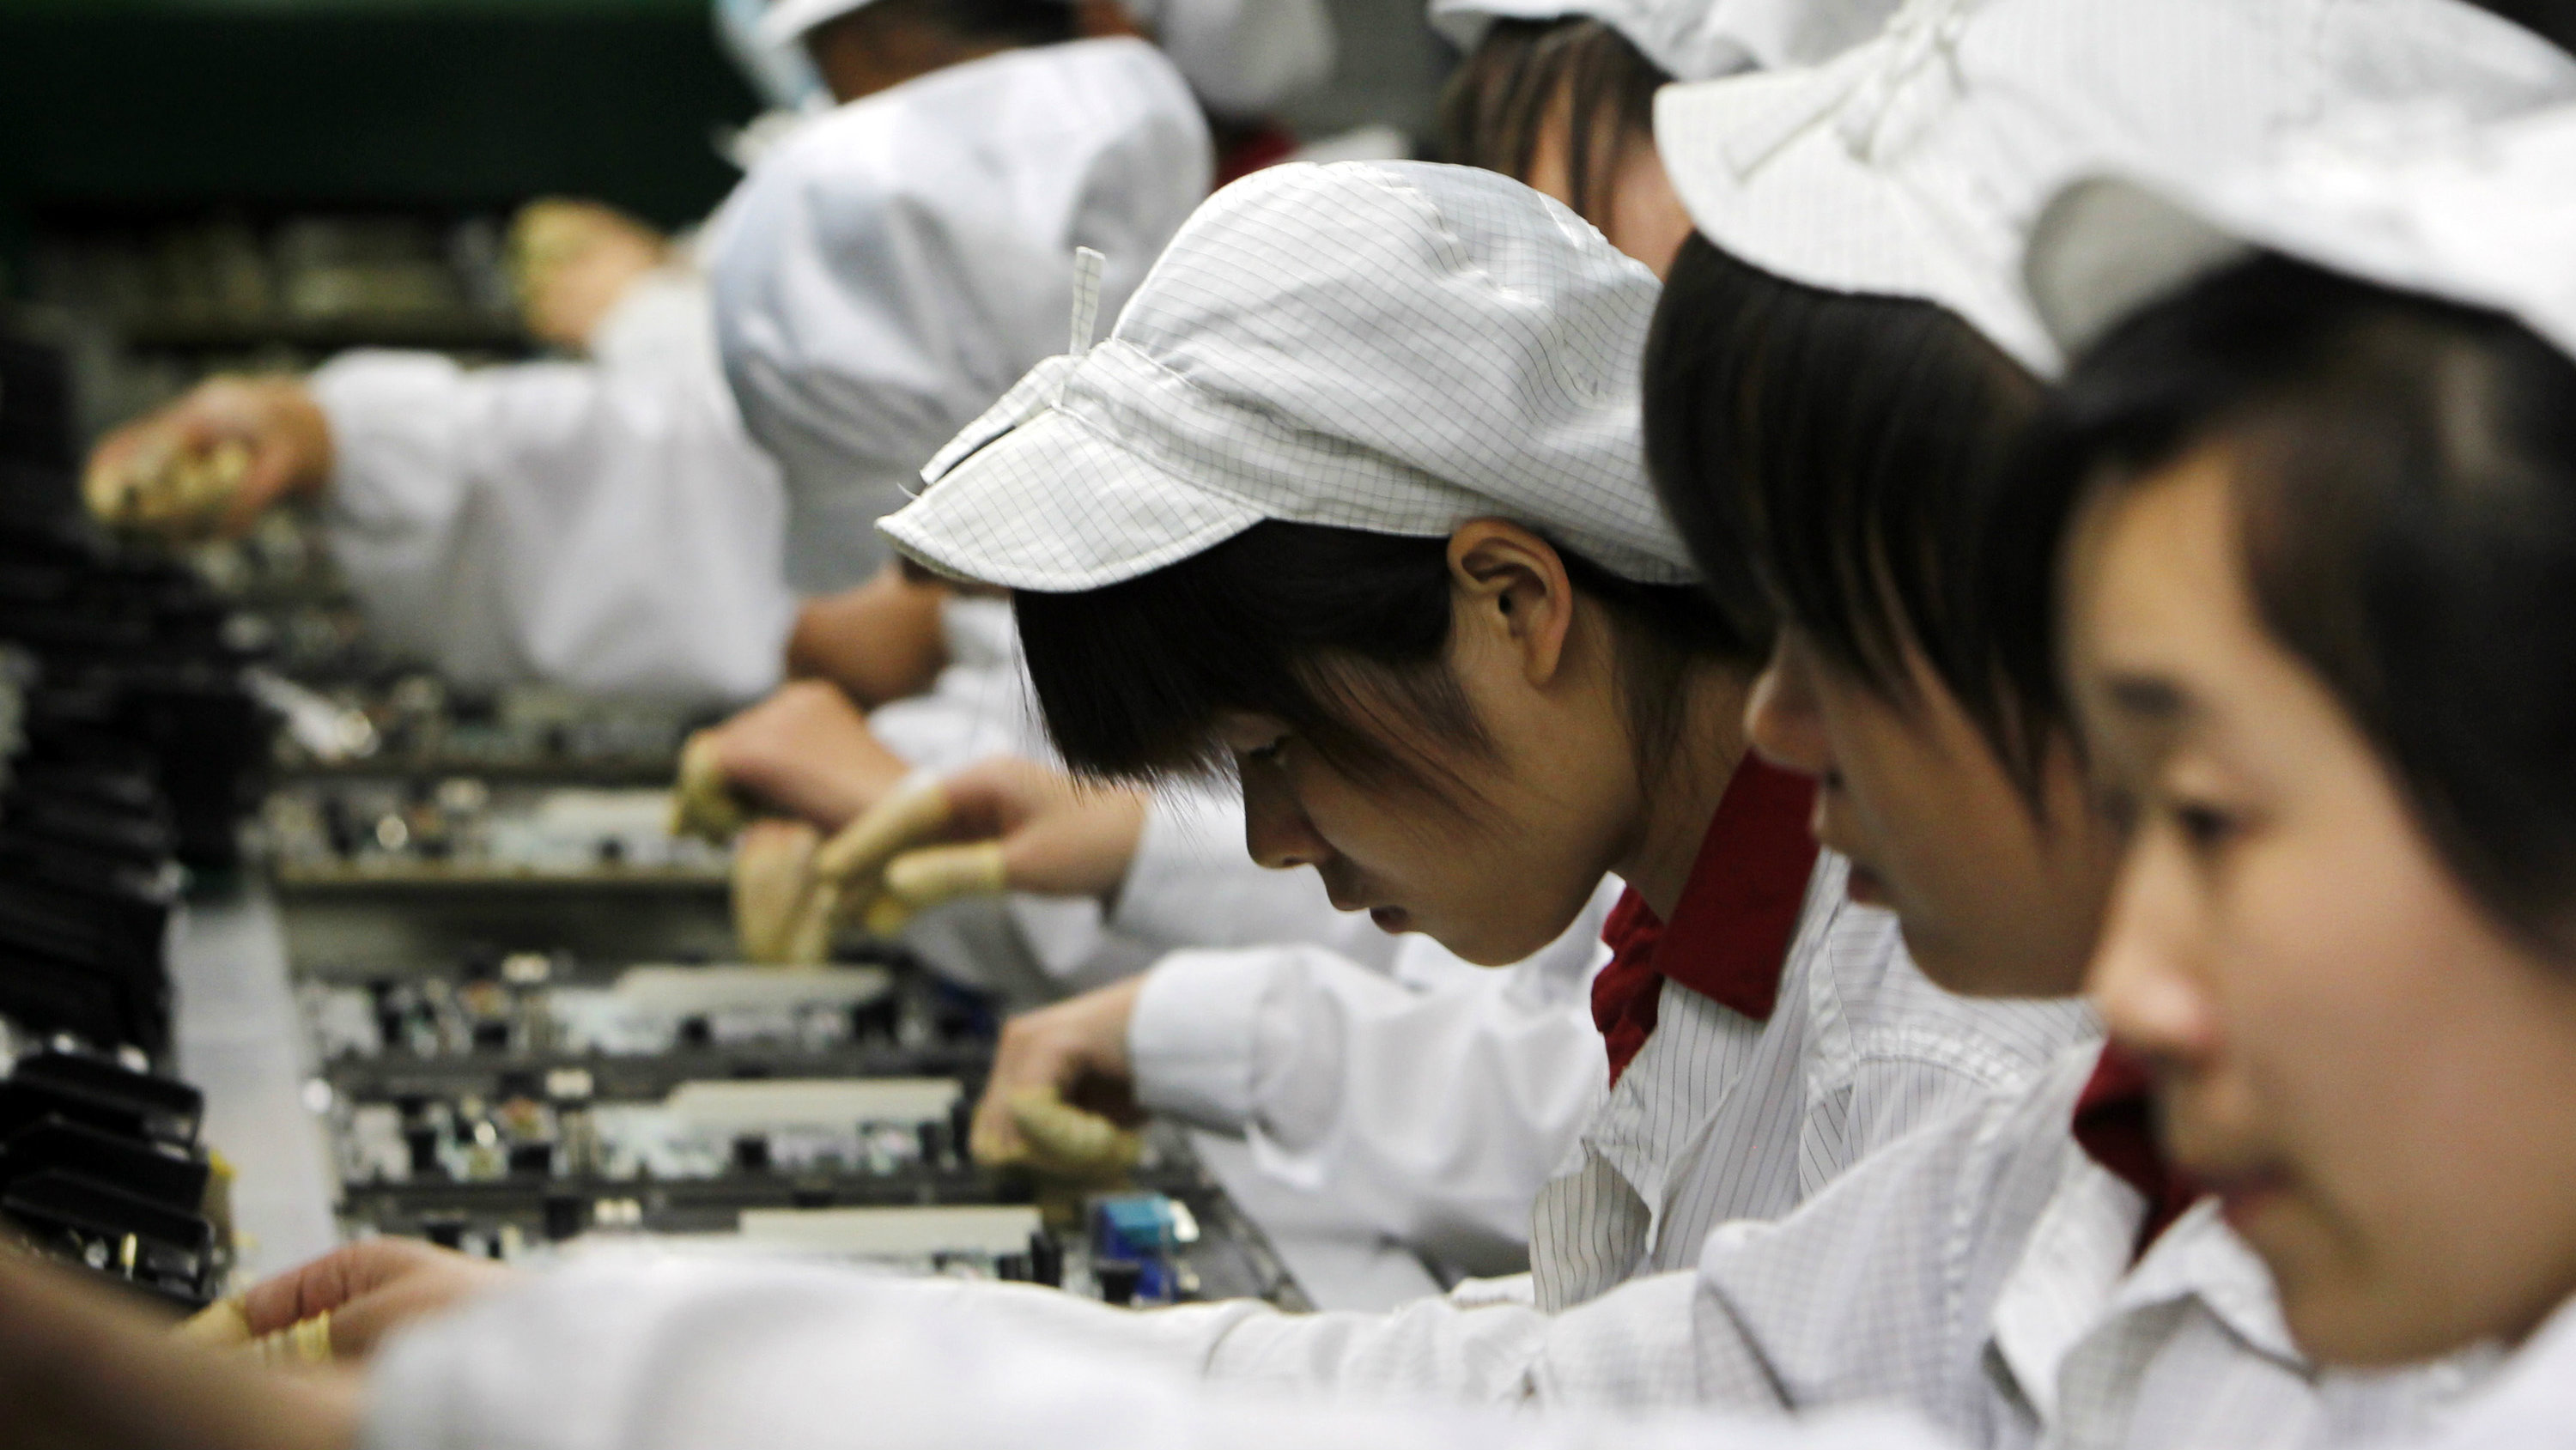 Staff members work on the production line at the Foxconn complex, where Apple's iPhones and iPads are created, in the southern Chinese city of Shenzhen.